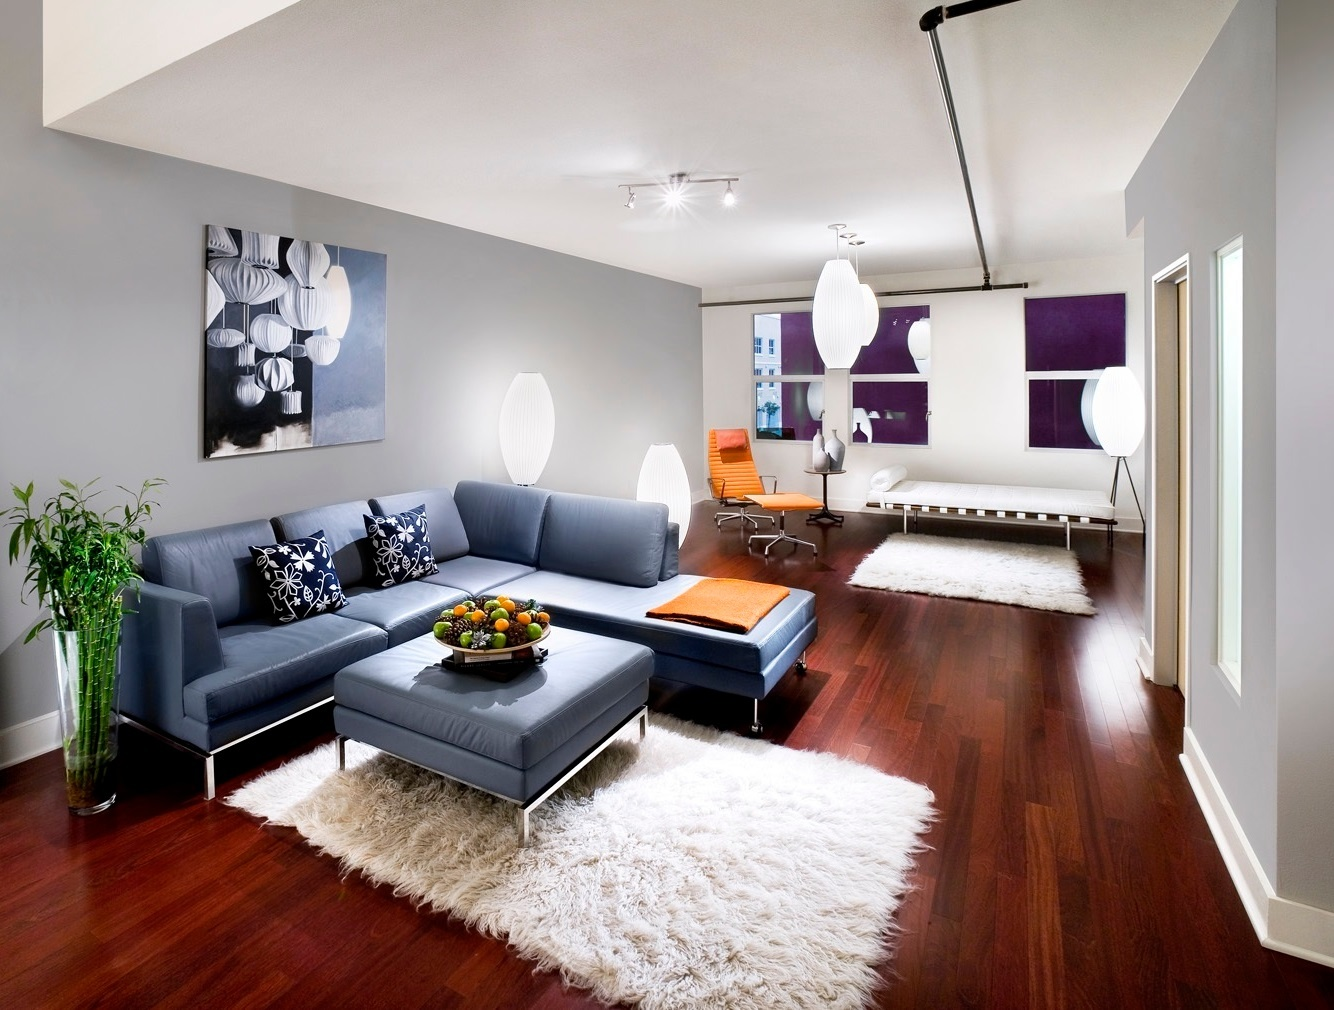 Cute Modern Living Room Set Up In Decor